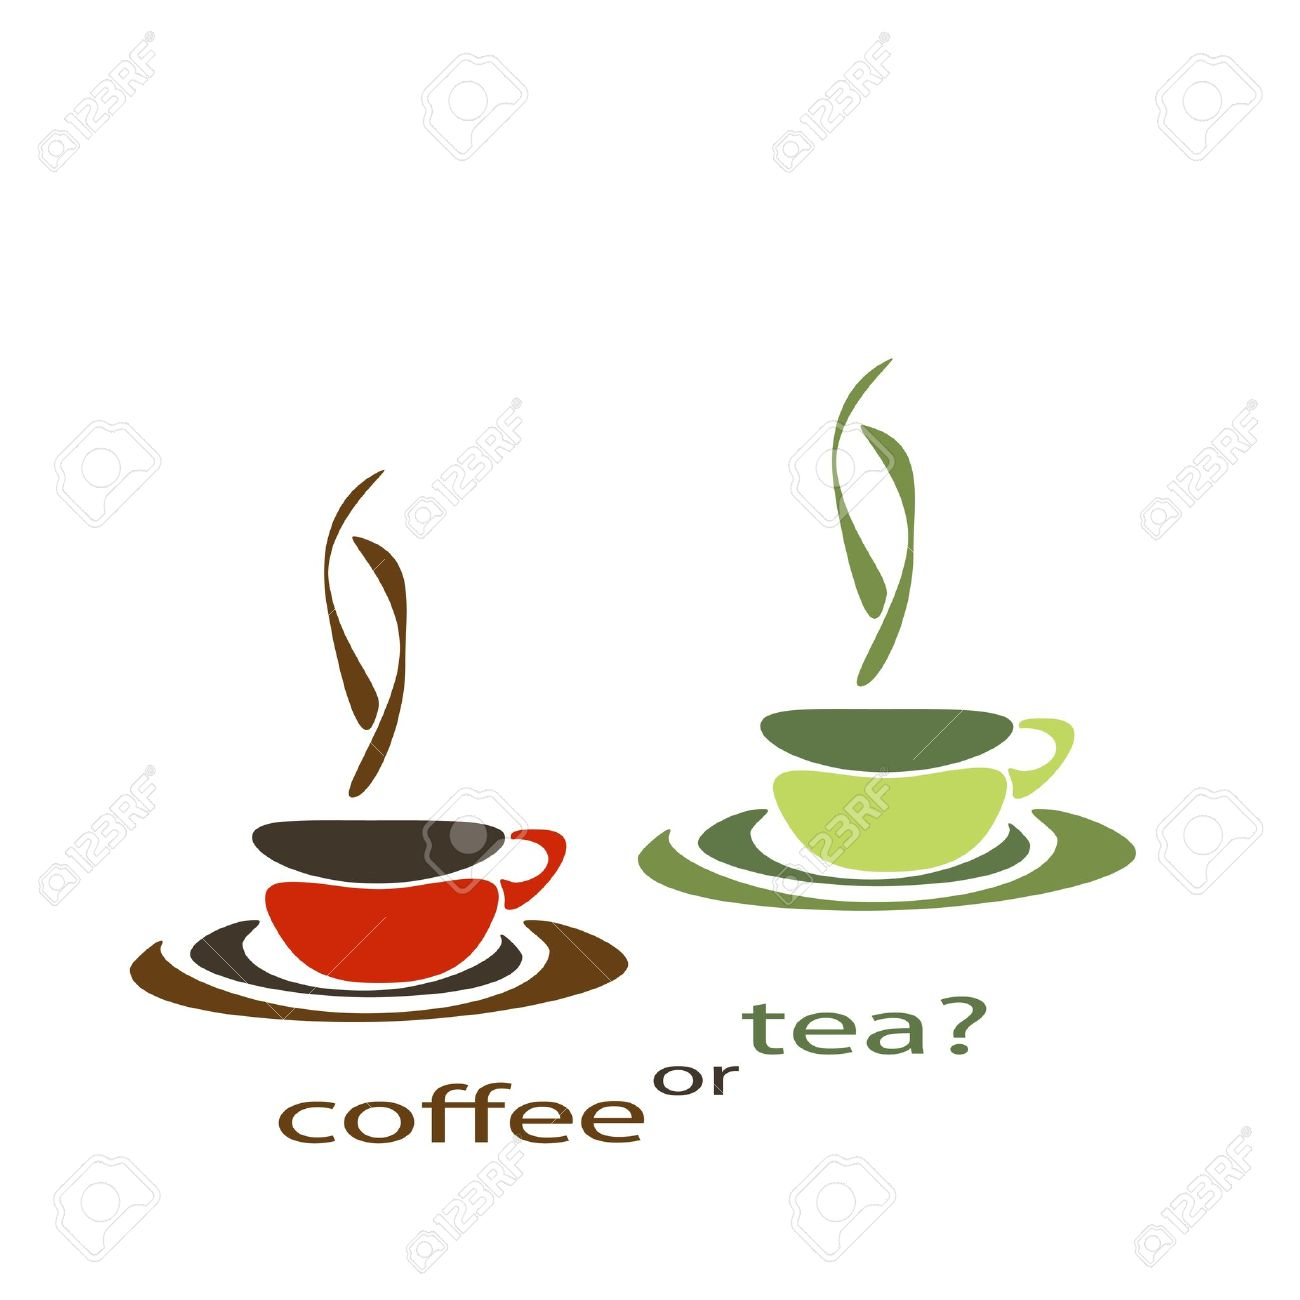 Coffee tea soda clipart.